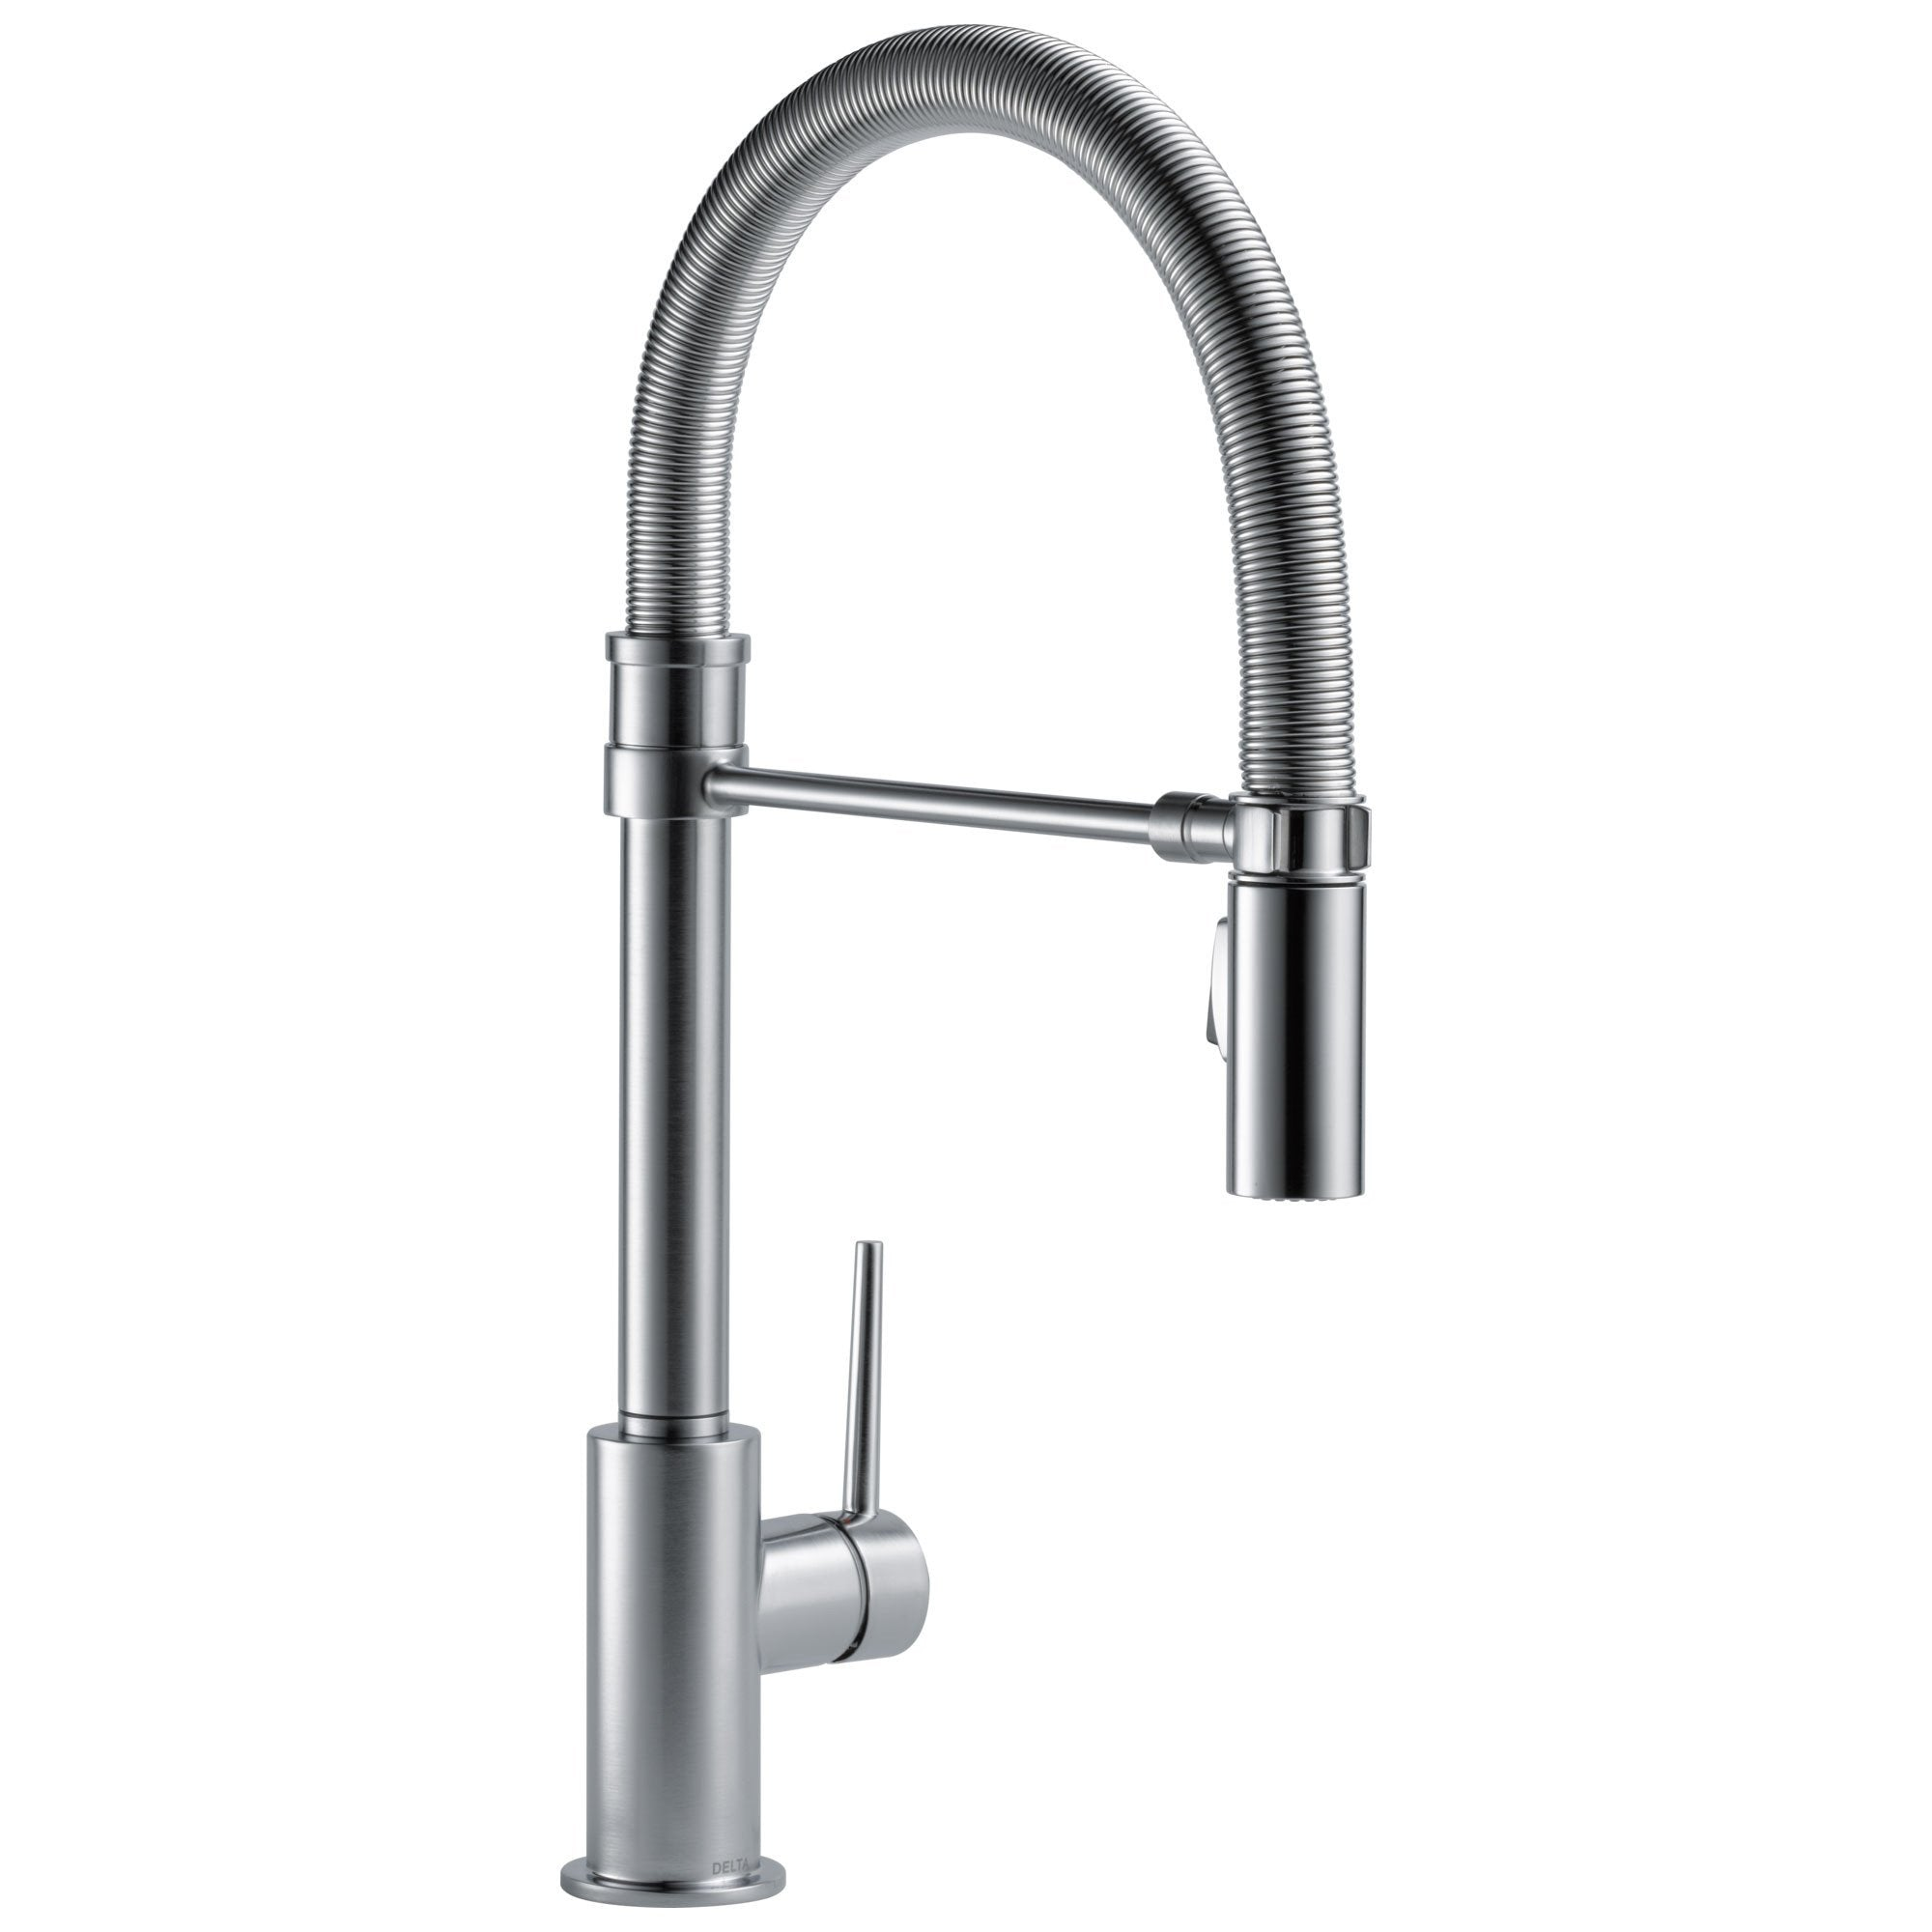 Delta Trinsic Collection Arctic Stainless Steel Finish Single Handle Pull-Down Kitchen Sink Faucet With Spring Spout 739274